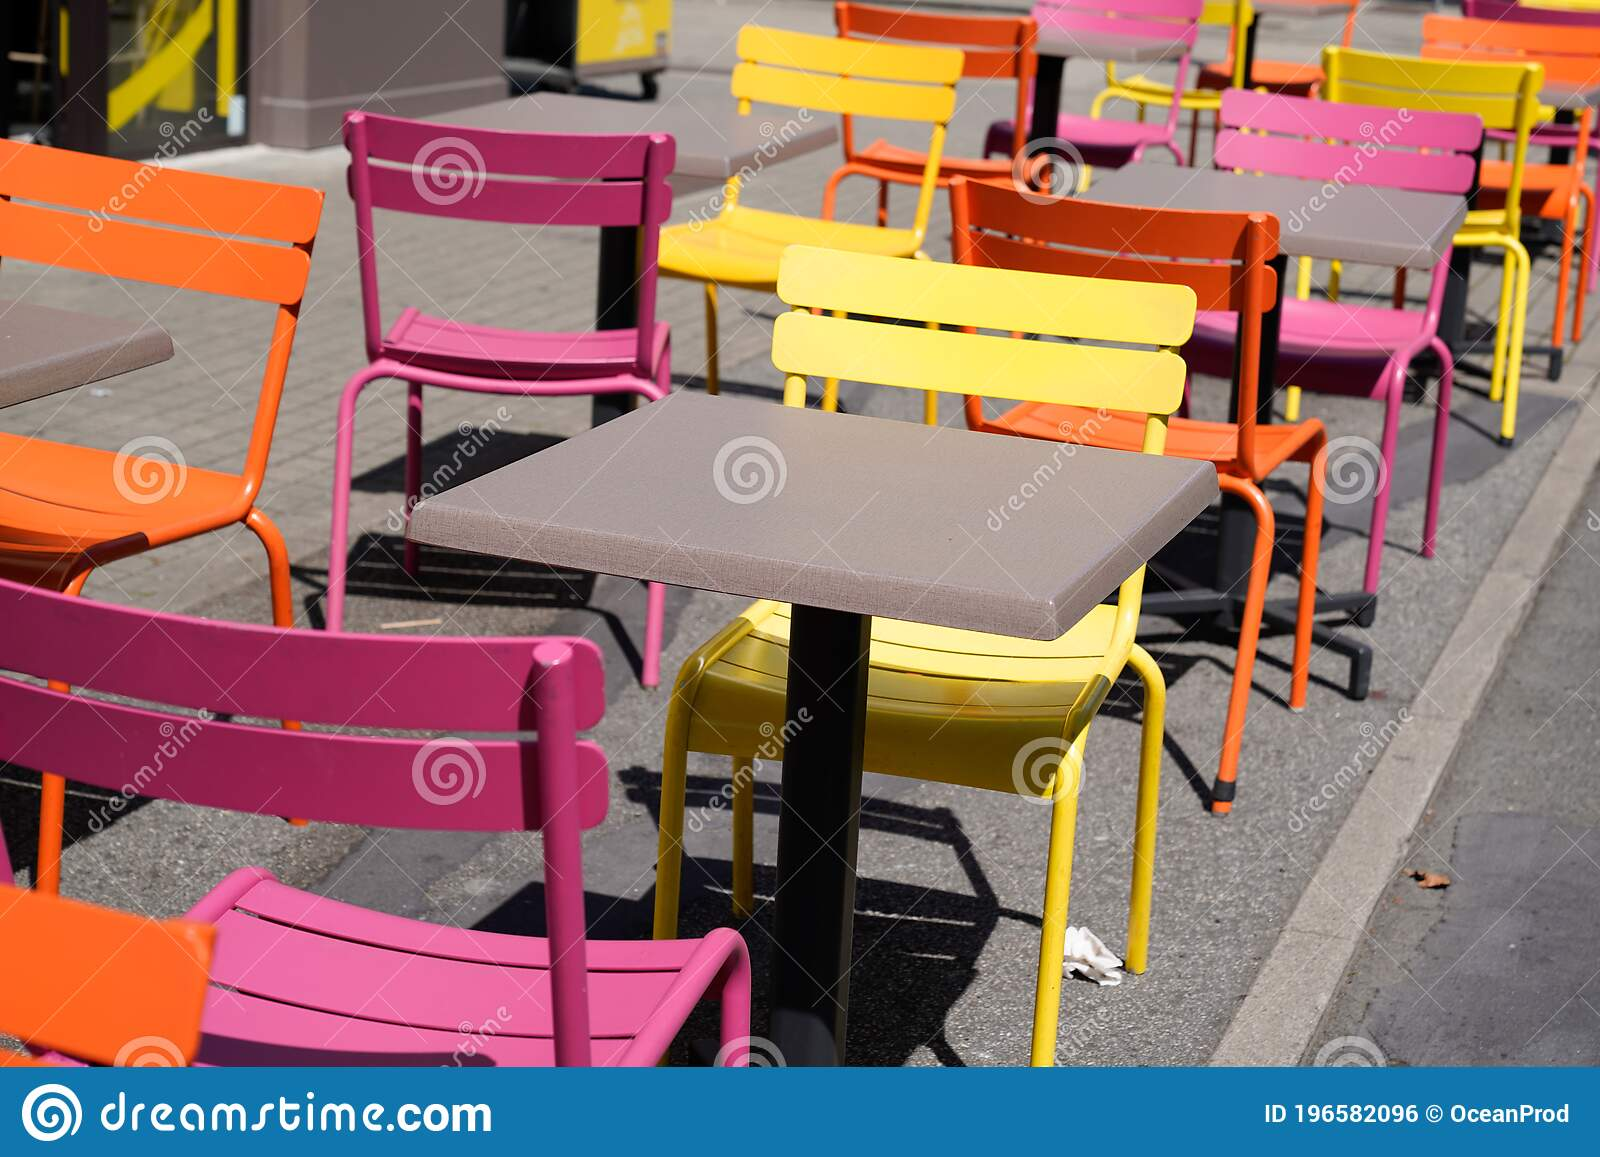 Charming Yellow Orange And Pink Chairs On Cafe Outdoor Restaurant Cafe And Wooden Tables Colorful Terrace Stock Photo Image Of Outside Background 196582096